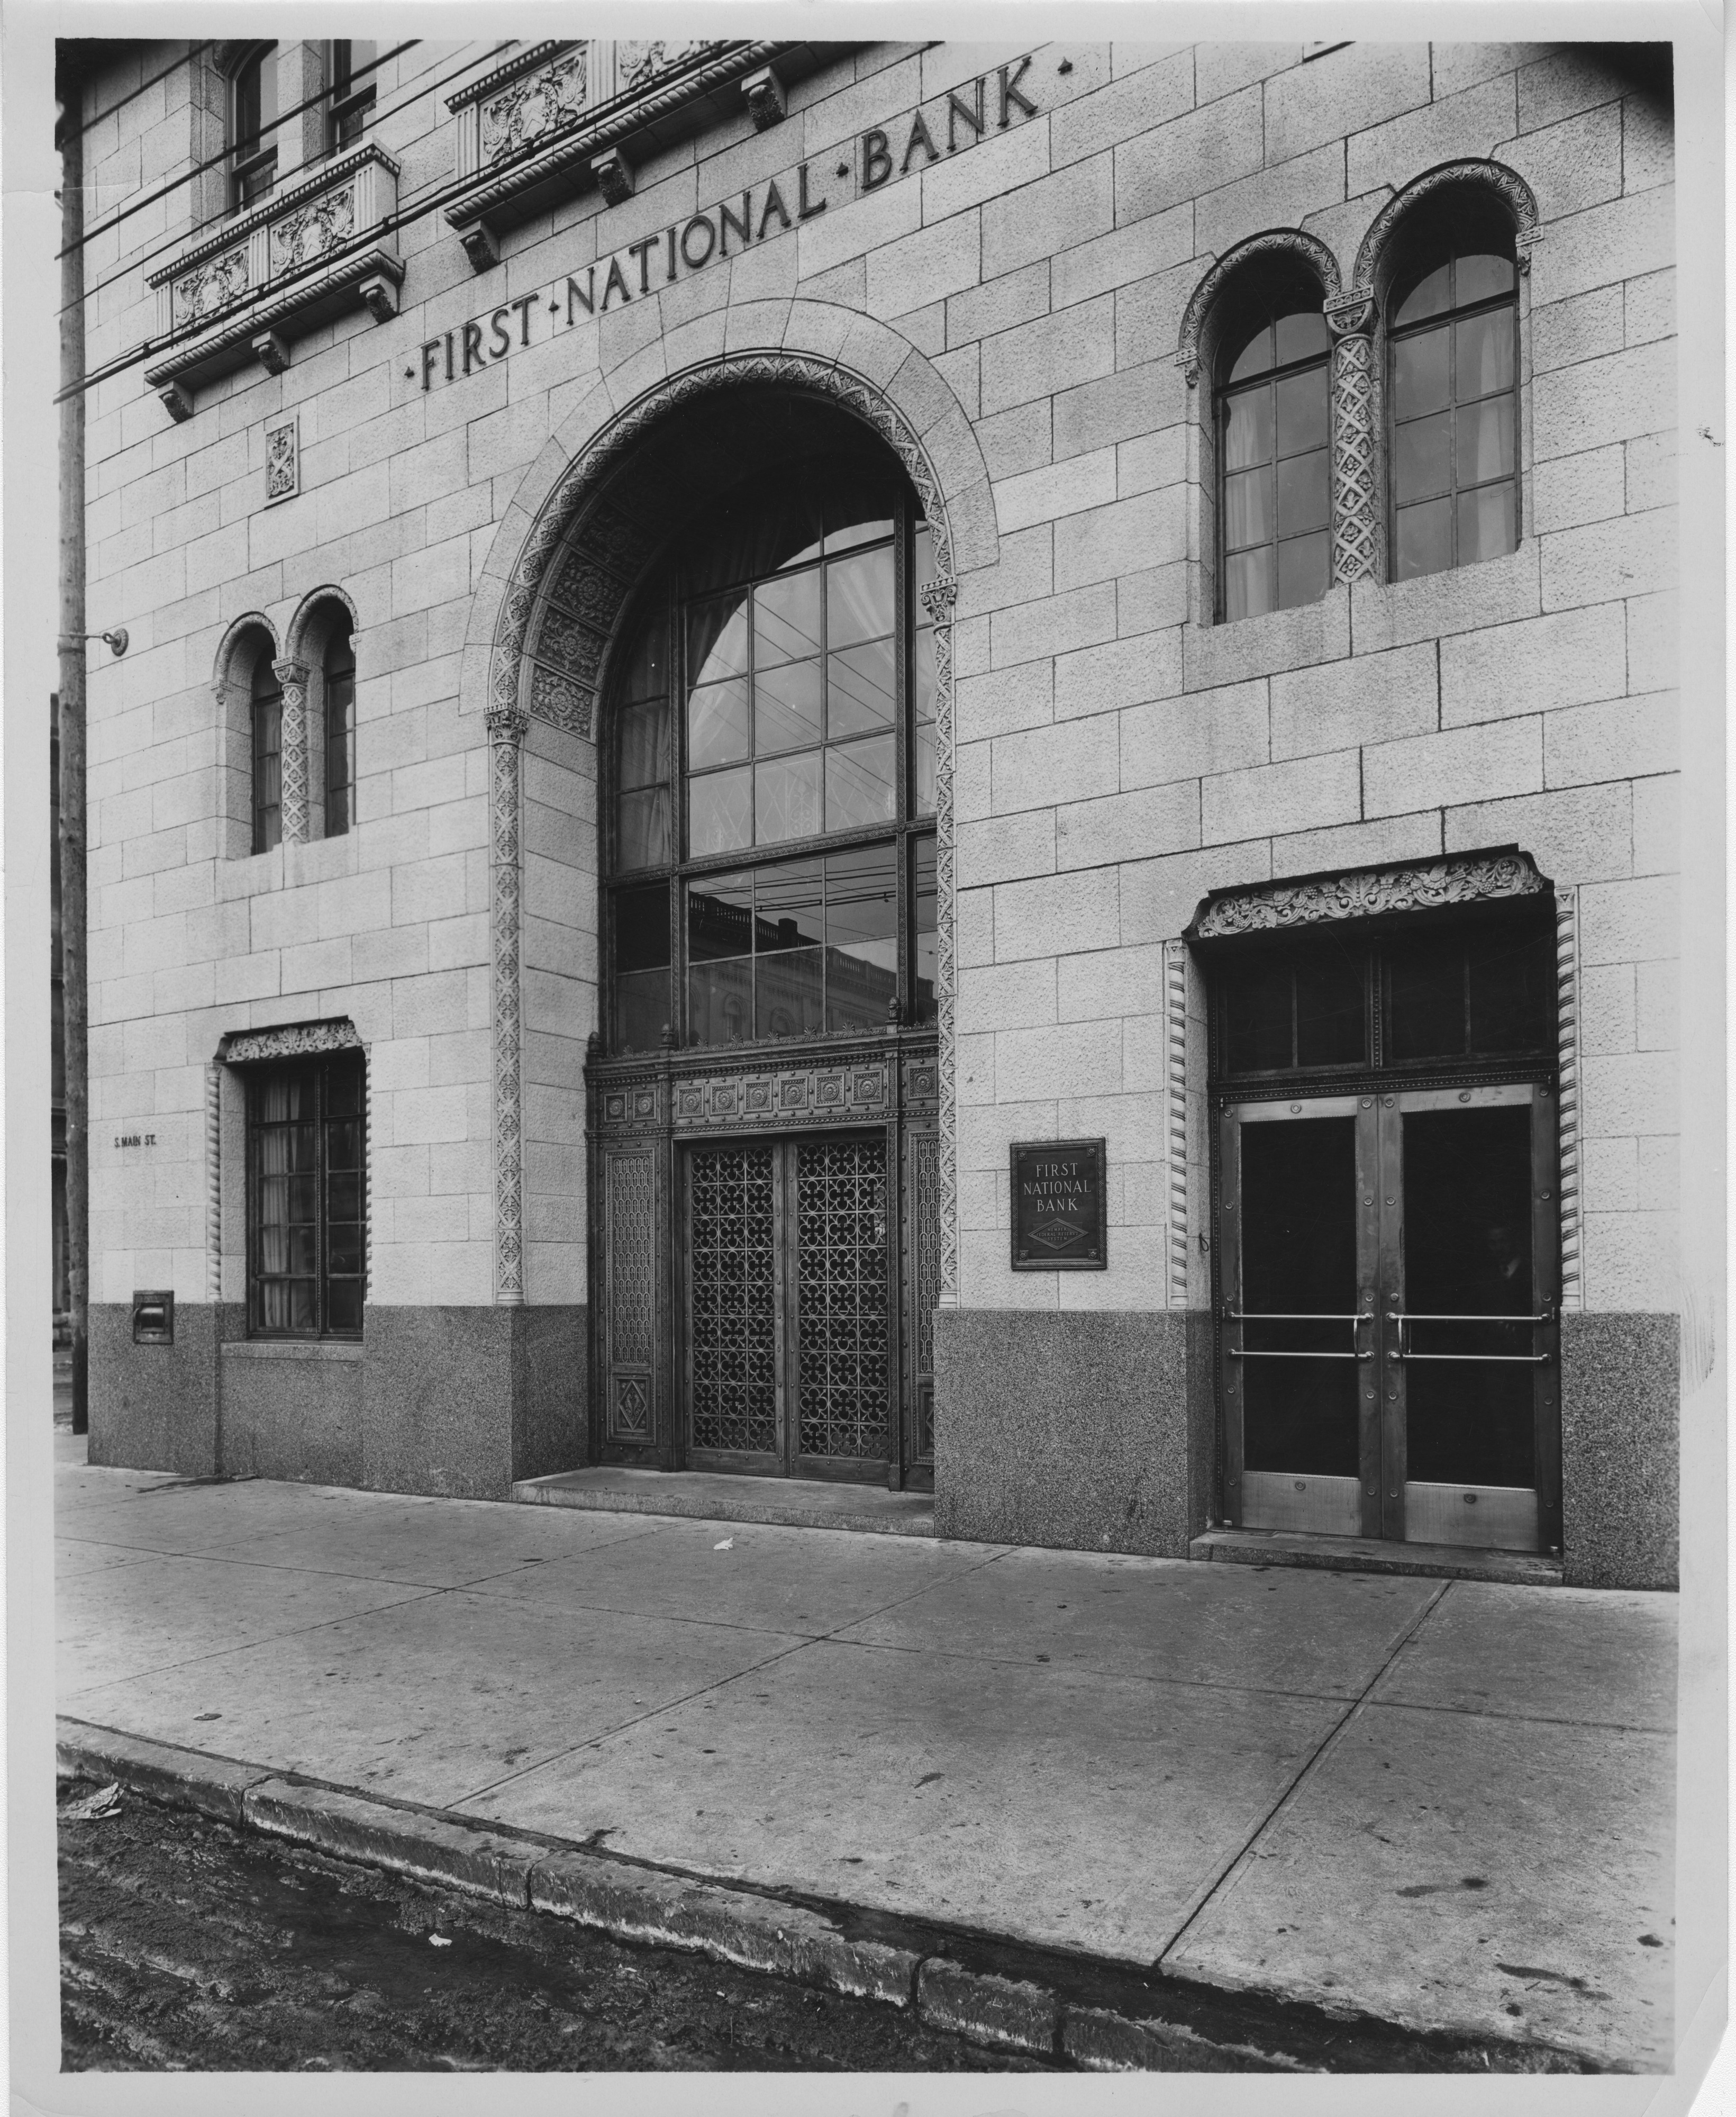 Entrance to the First National Bank Building in Ann Arbor, 1930.